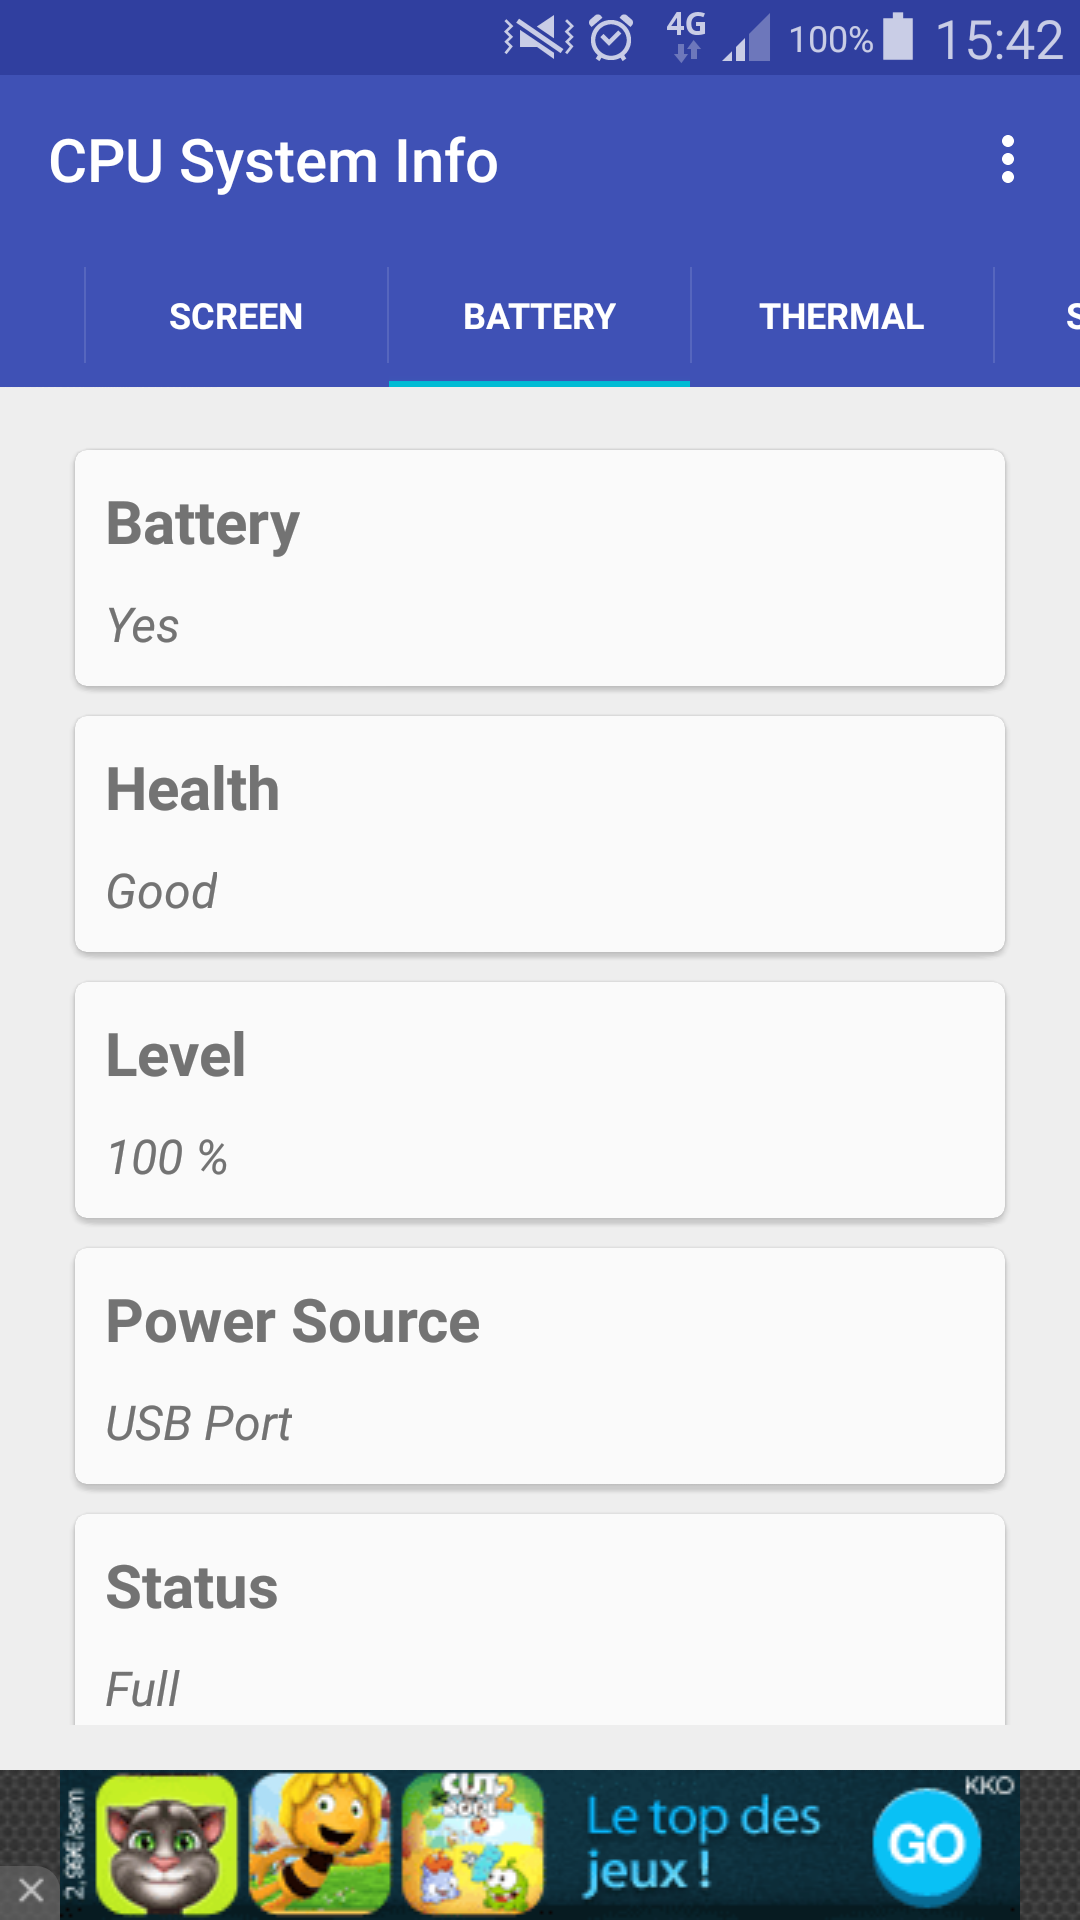 How to get Battery Information programmatically in Android